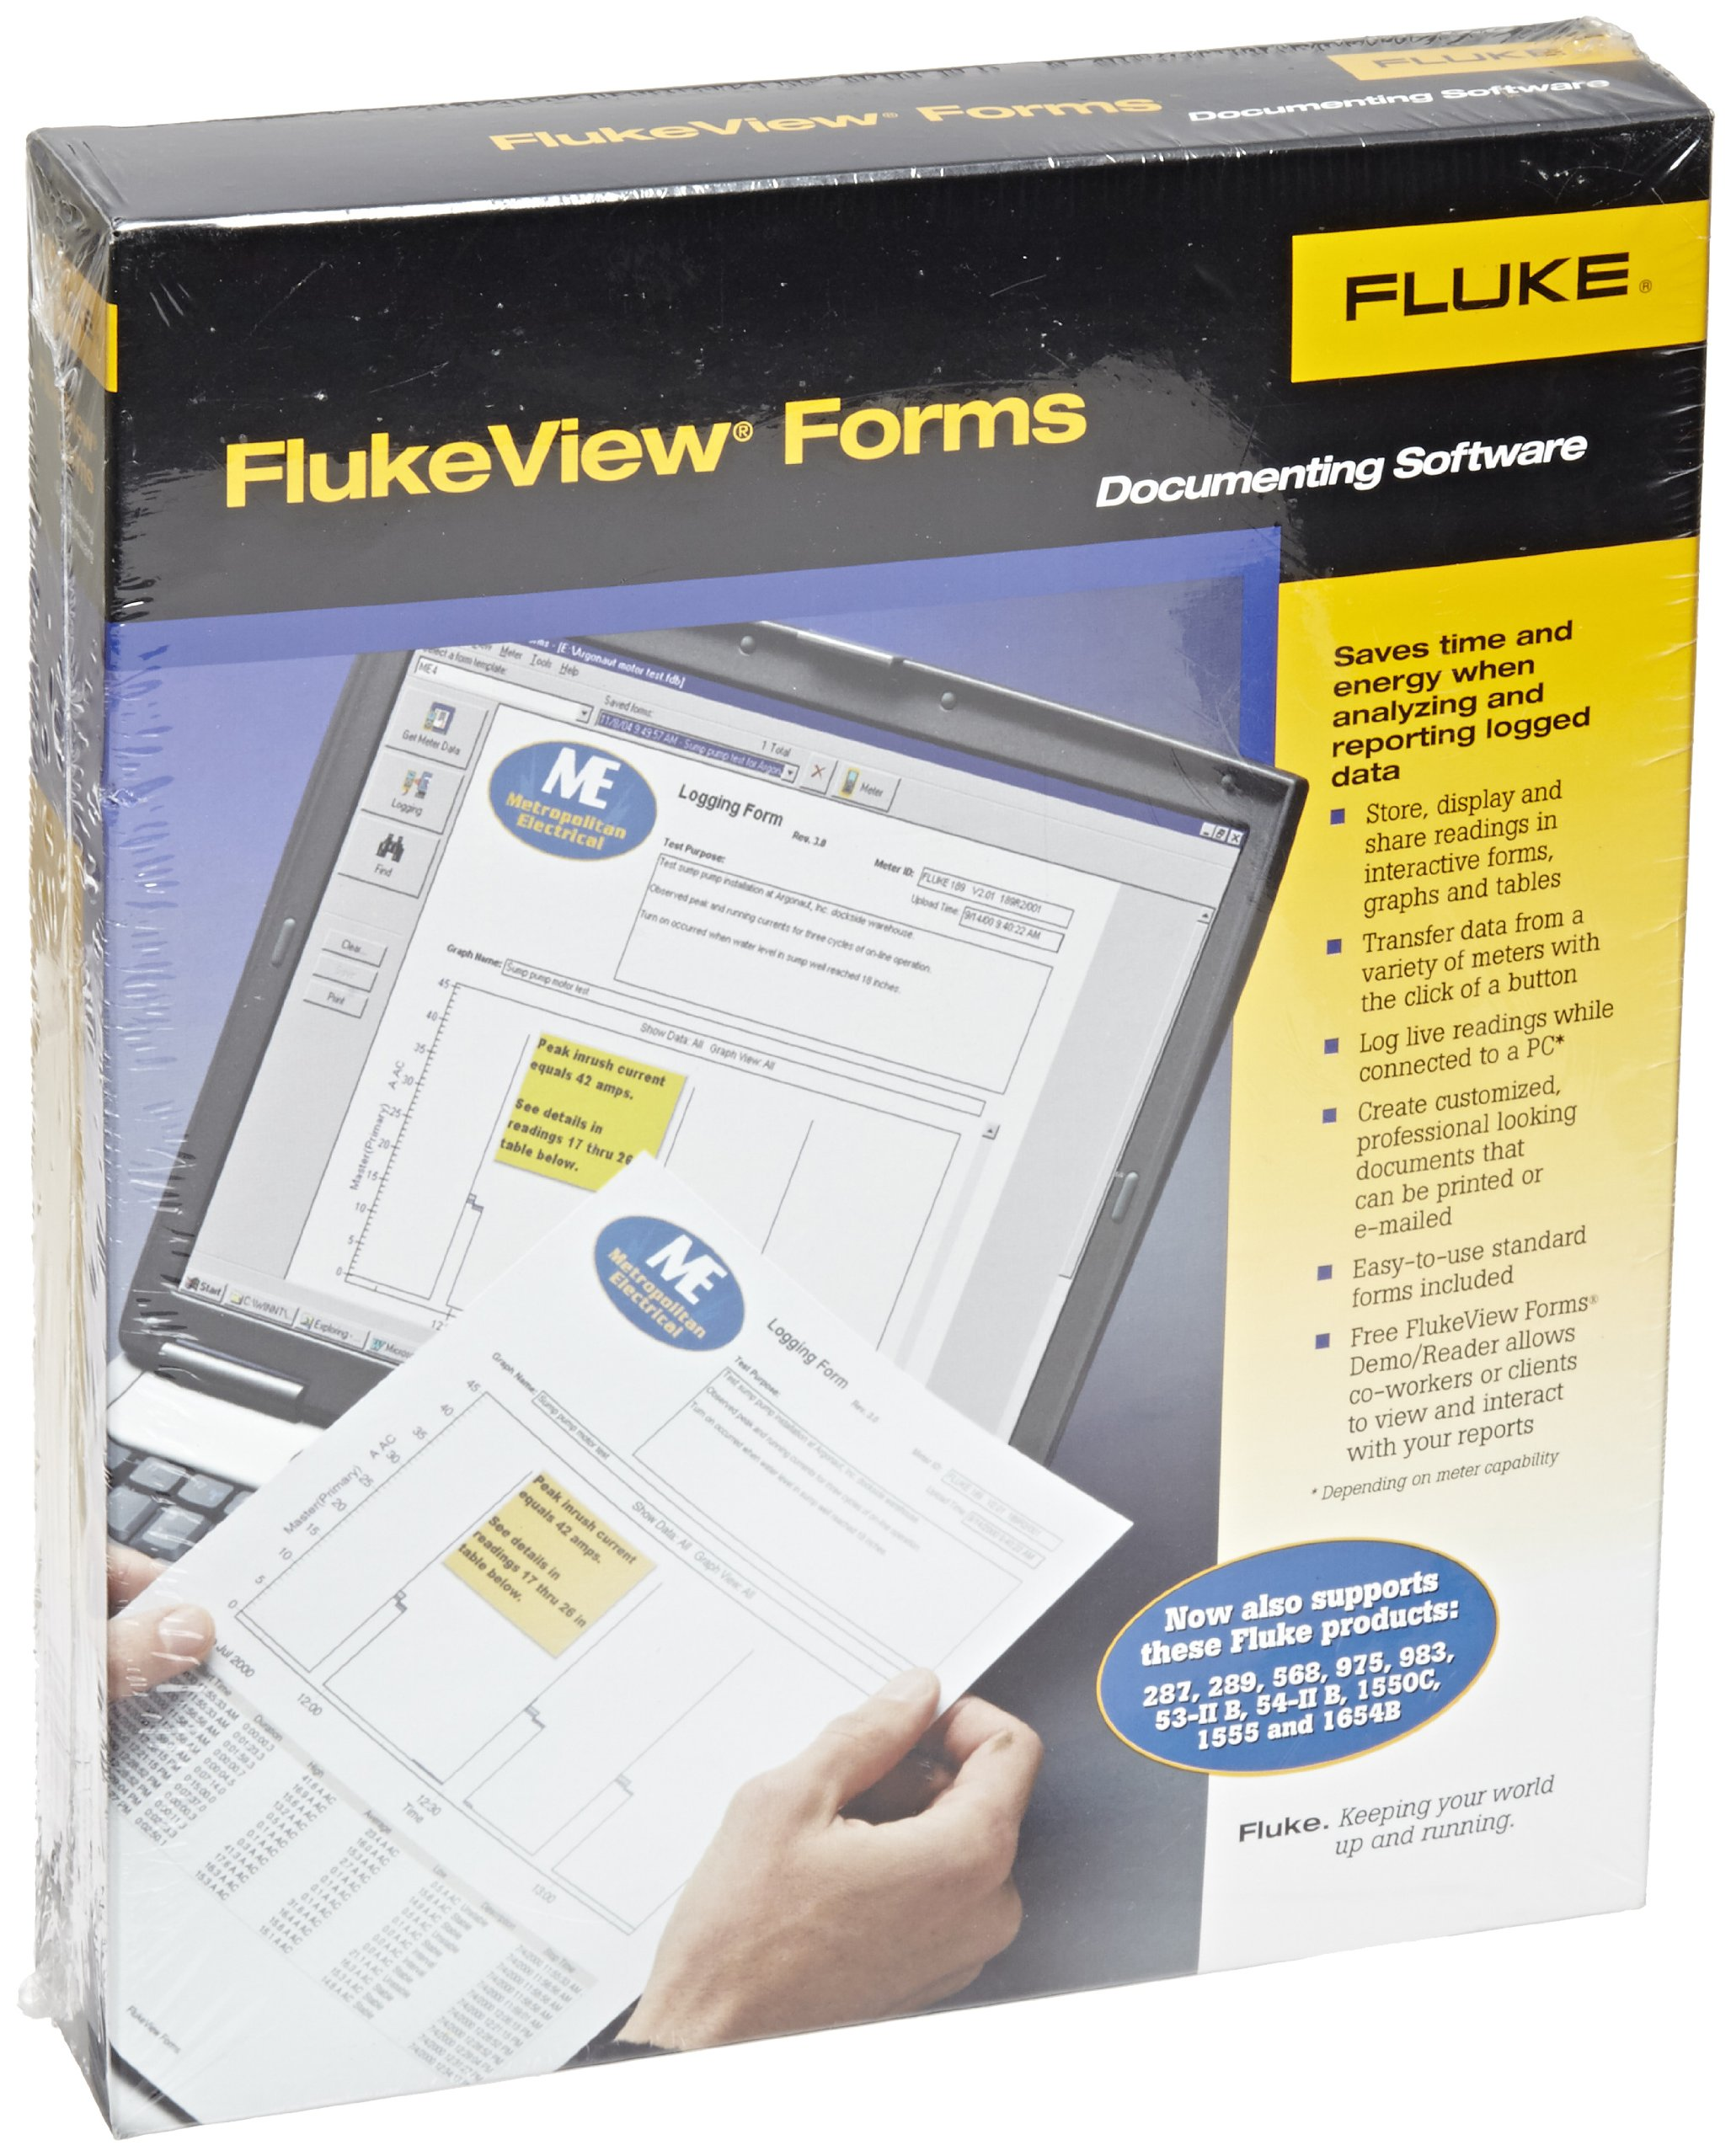 Fluke FVF-BASIC FlukeView Forms Basic Software with Cable for 280 Series, 180 Series, 789, 1653B and 1550B